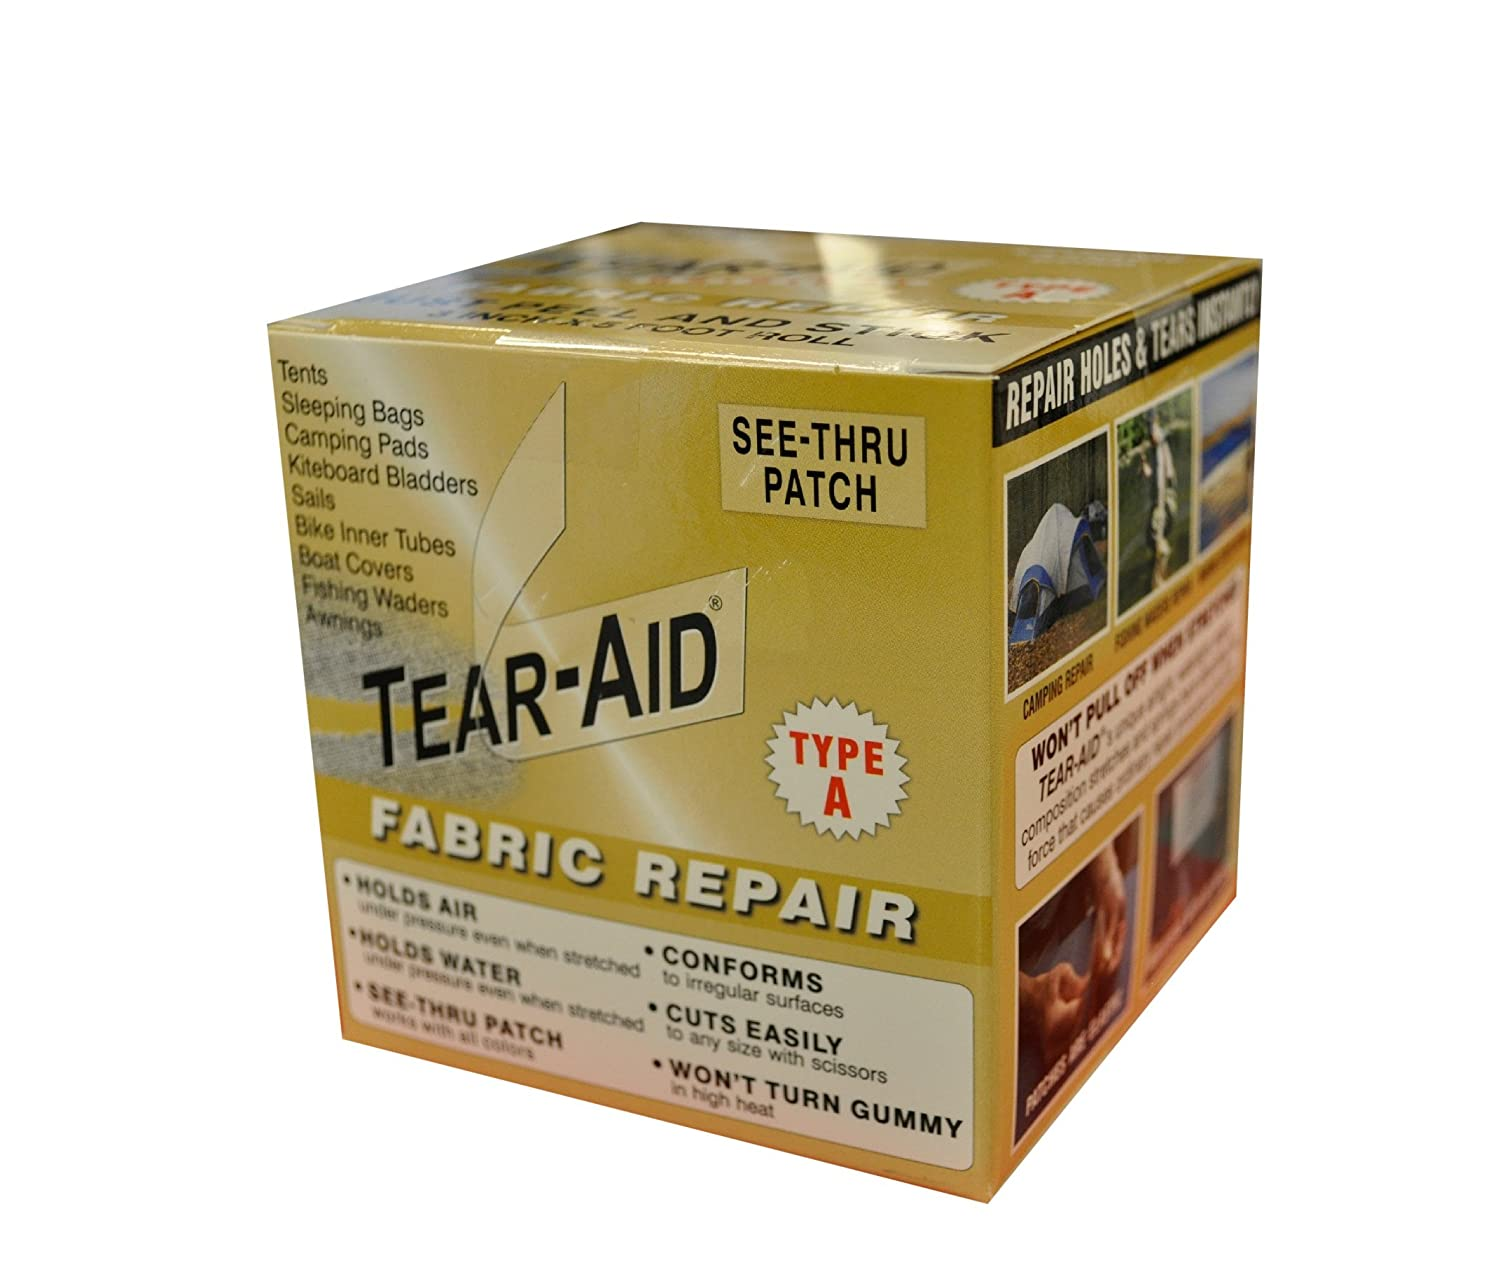 Amazon.com Tear-Aid Repairs Patch Roll Kit for Type A Fabrics Sports u0026 Outdoors  sc 1 st  Amazon.com & Amazon.com: Tear-Aid Repairs Patch Roll Kit for Type A Fabrics ...